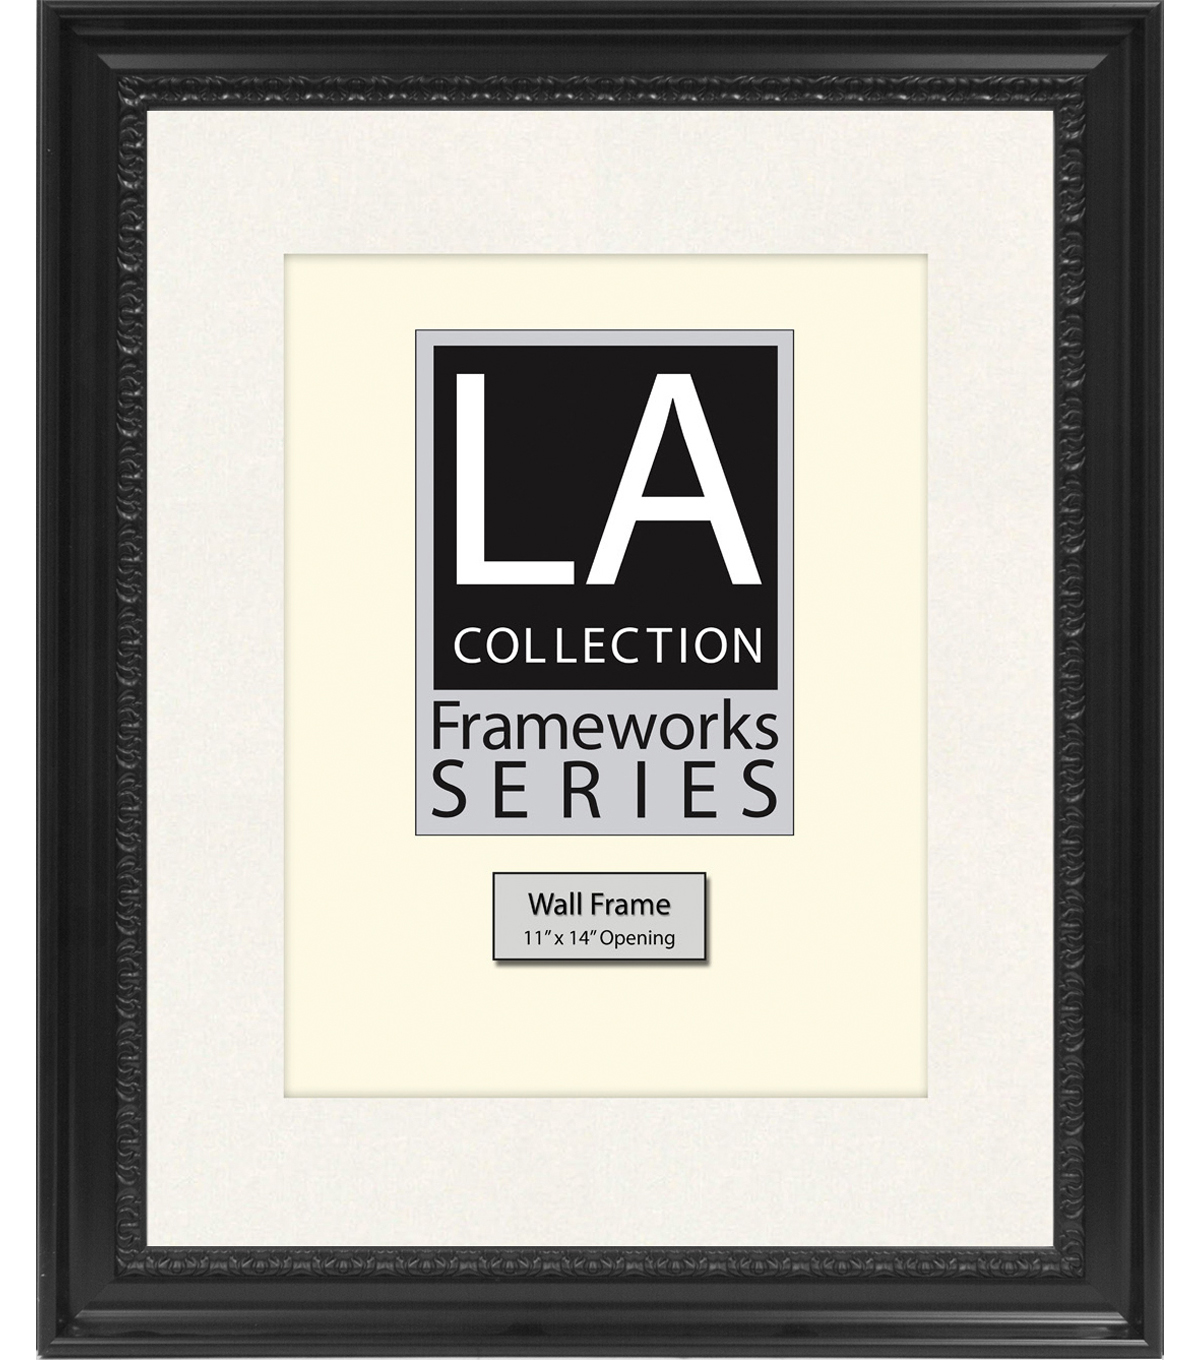 La collection wall frame 16x20 black joann la collection frameworks series wall frame 16u0027u0027x20u0027u0027 jeuxipadfo Gallery